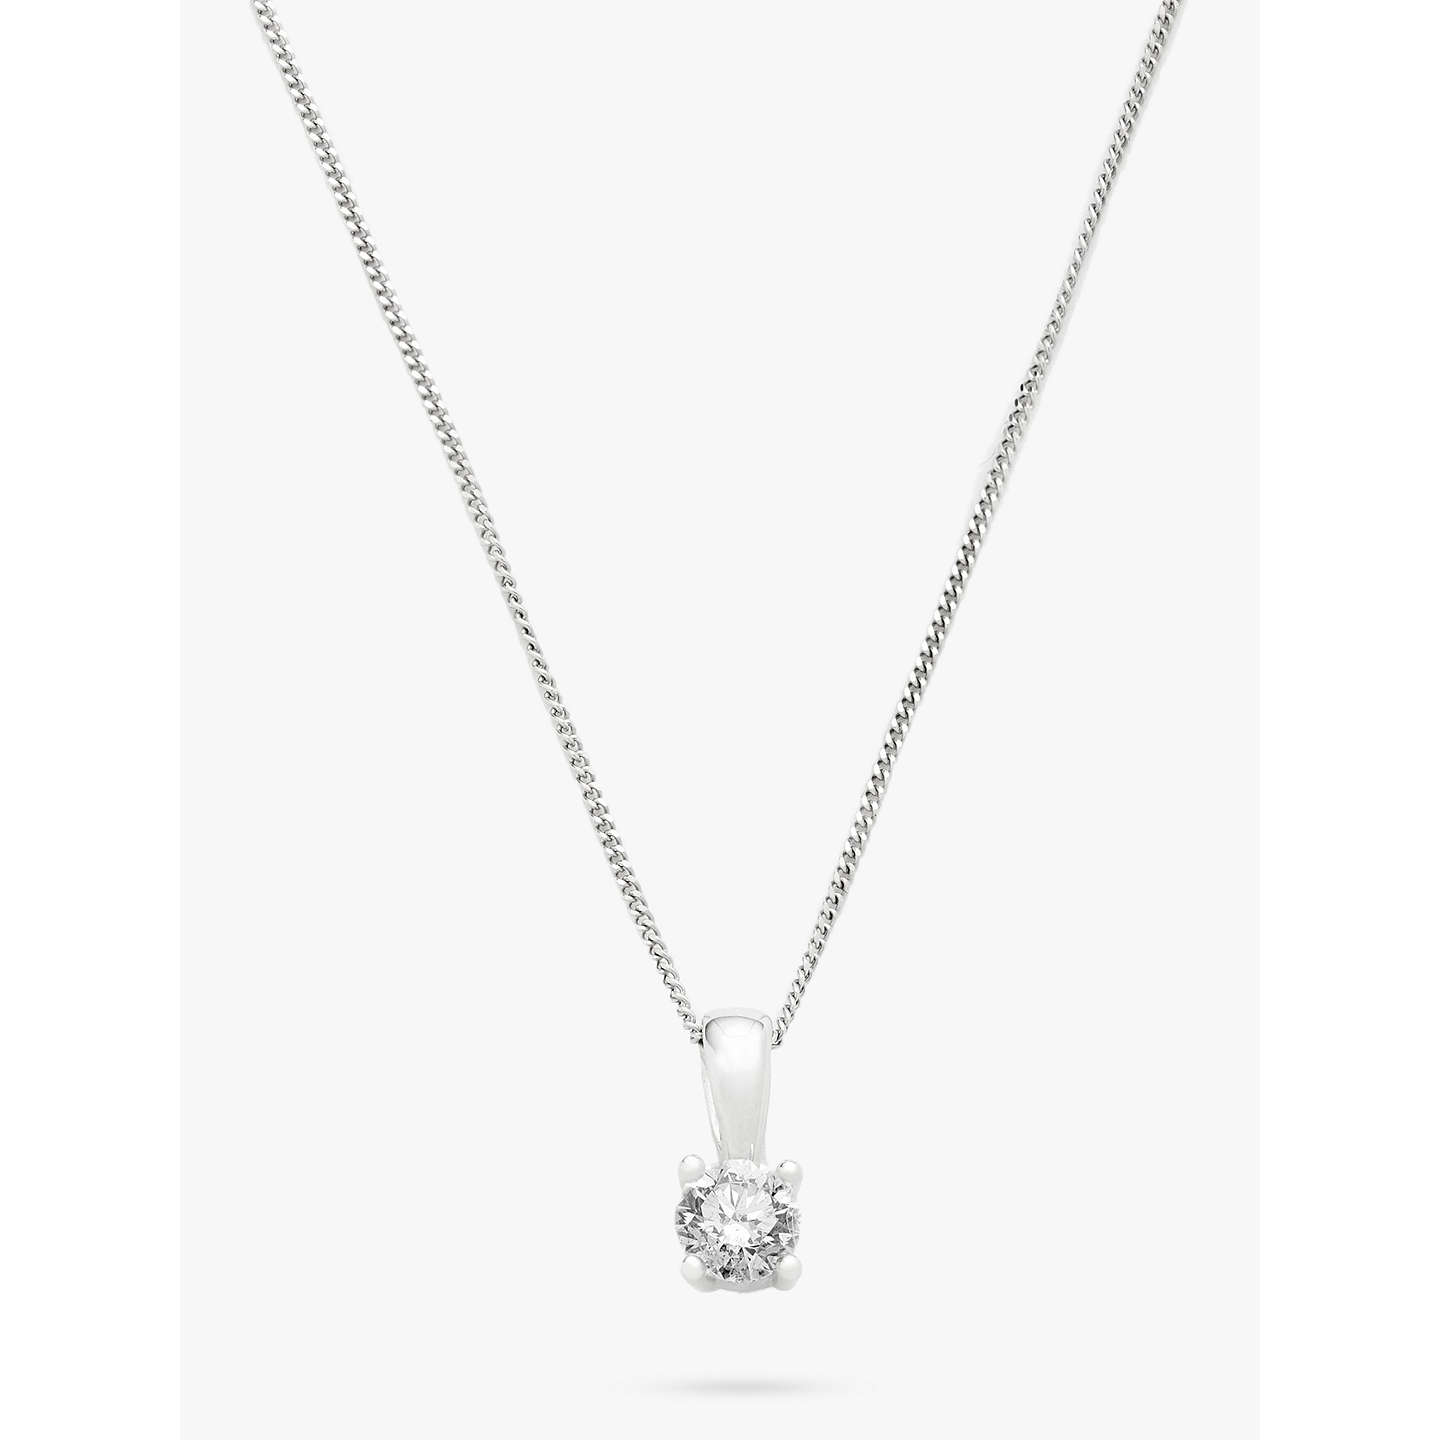 Mogul 18ct white gold round brilliant solitaire diamond pendant buymogul 18ct white gold round brilliant solitaire diamond pendant necklace 05ct online at johnlewis aloadofball Image collections